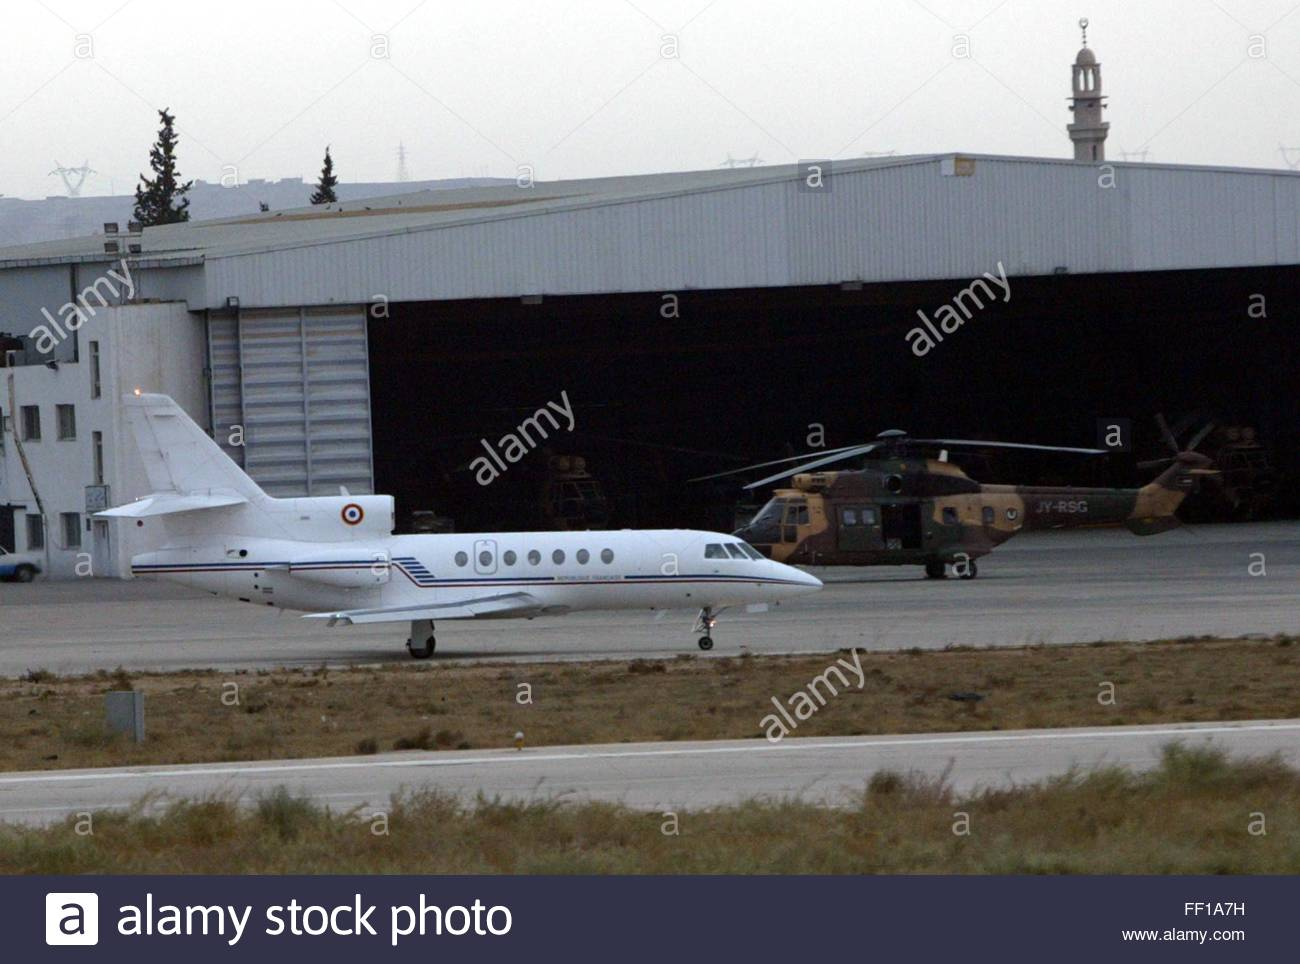 A French Hospital Plane (l) Prepares For Take-off At A Jordanian ...